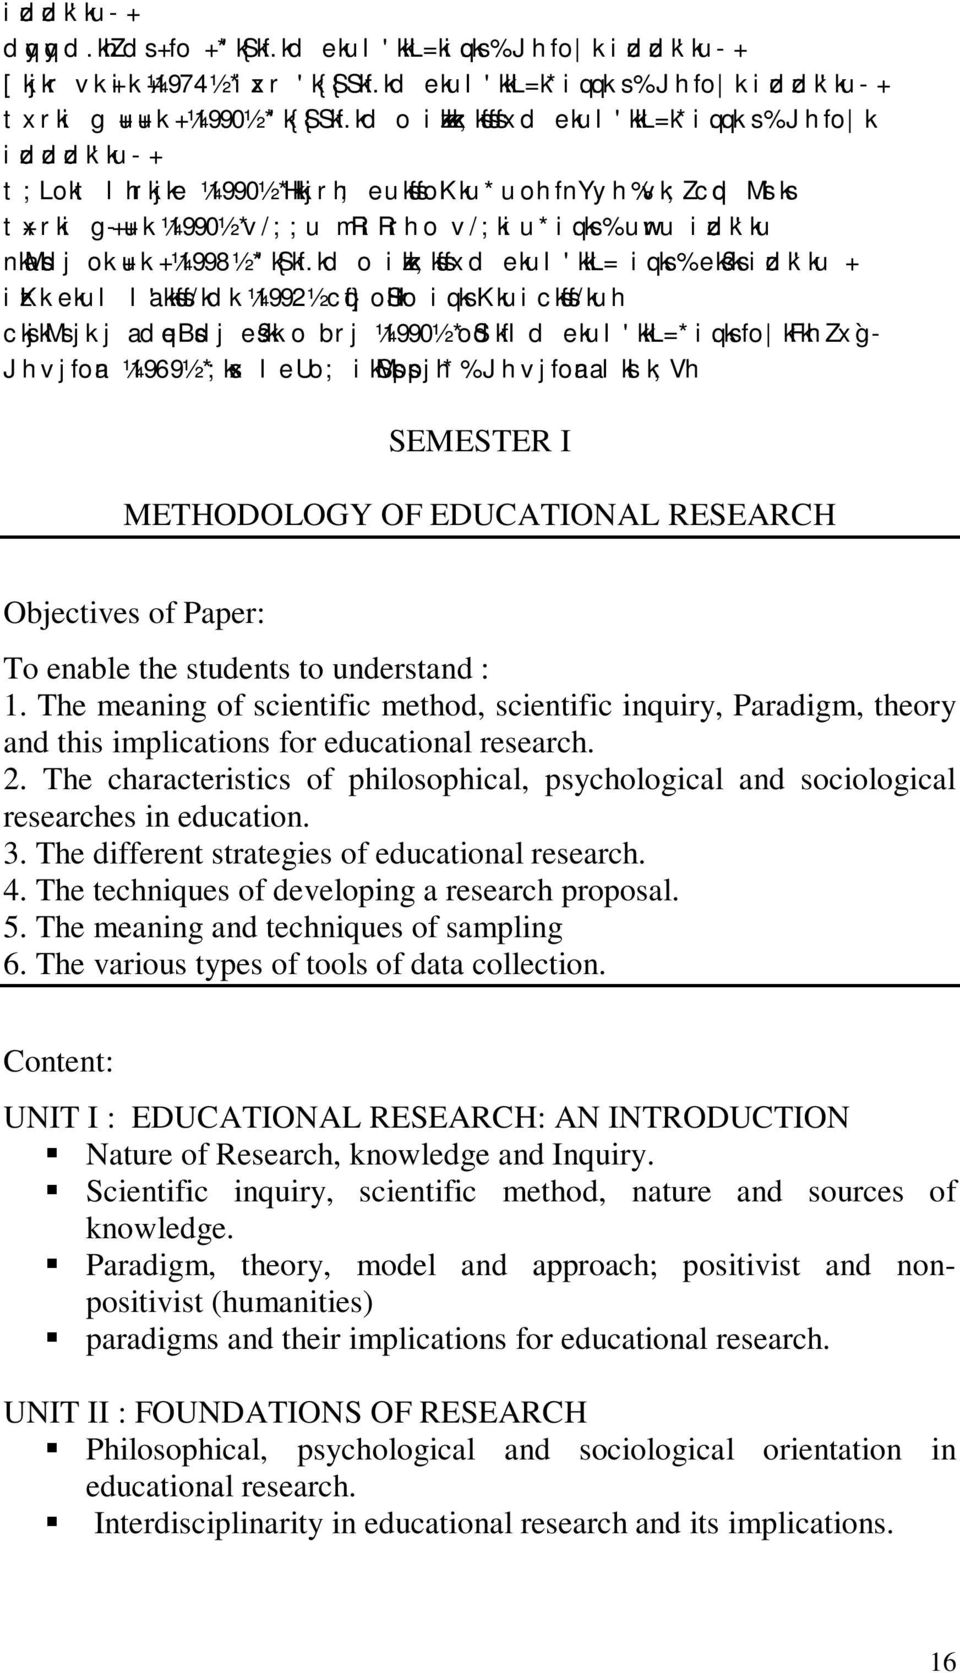 Sociology Essay Ideas Sociology Research Paper Sample Good